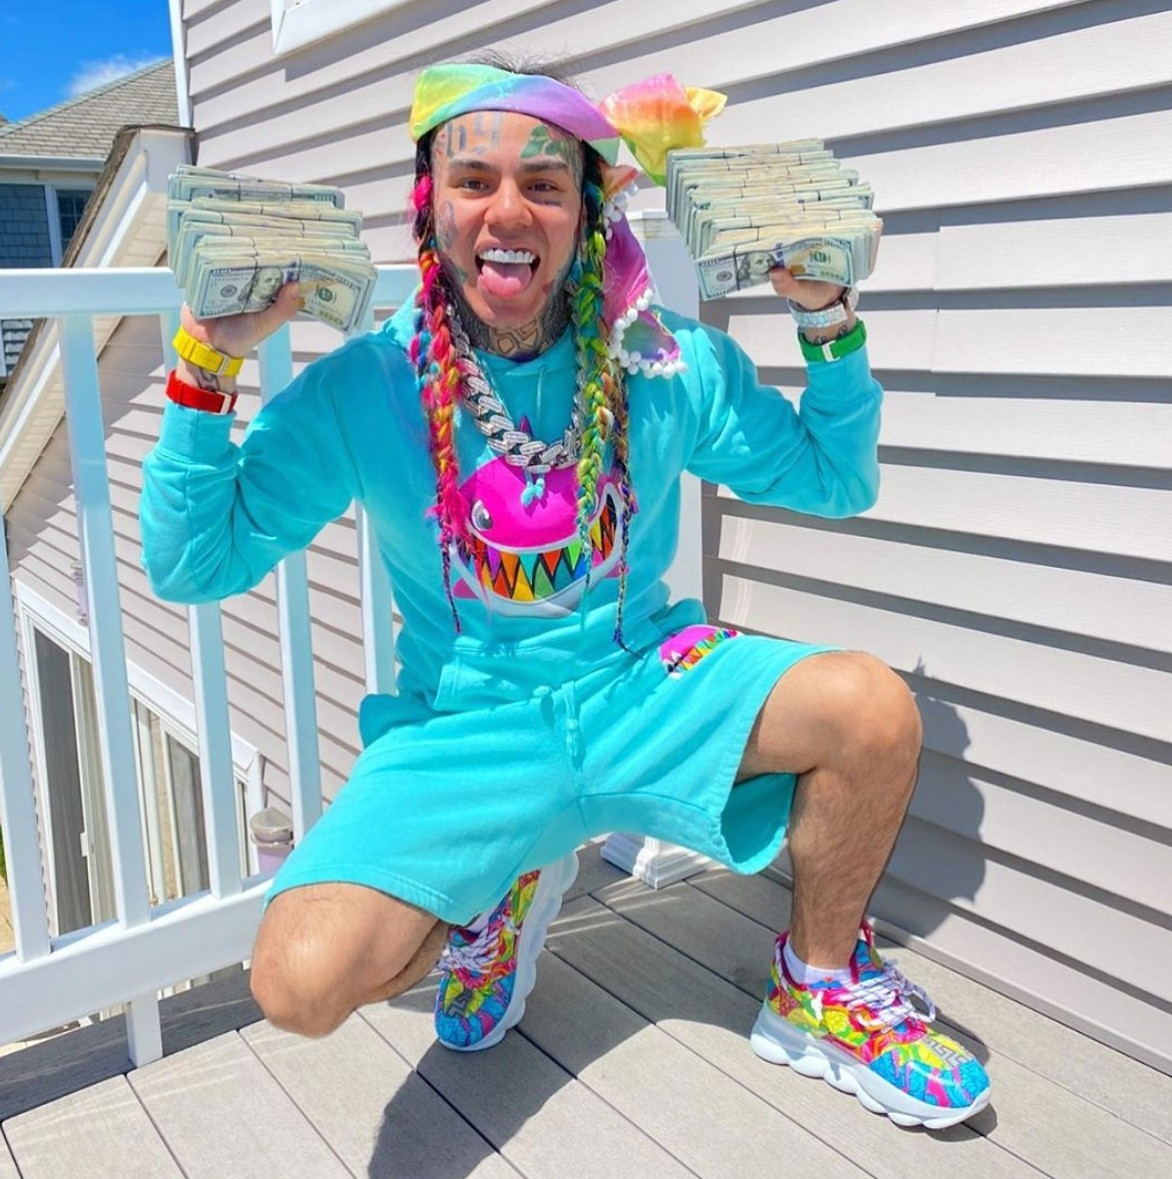 Tekashi 6ix9ine Forced to Move After His Witness Protection Address Was Leaked (Twice)